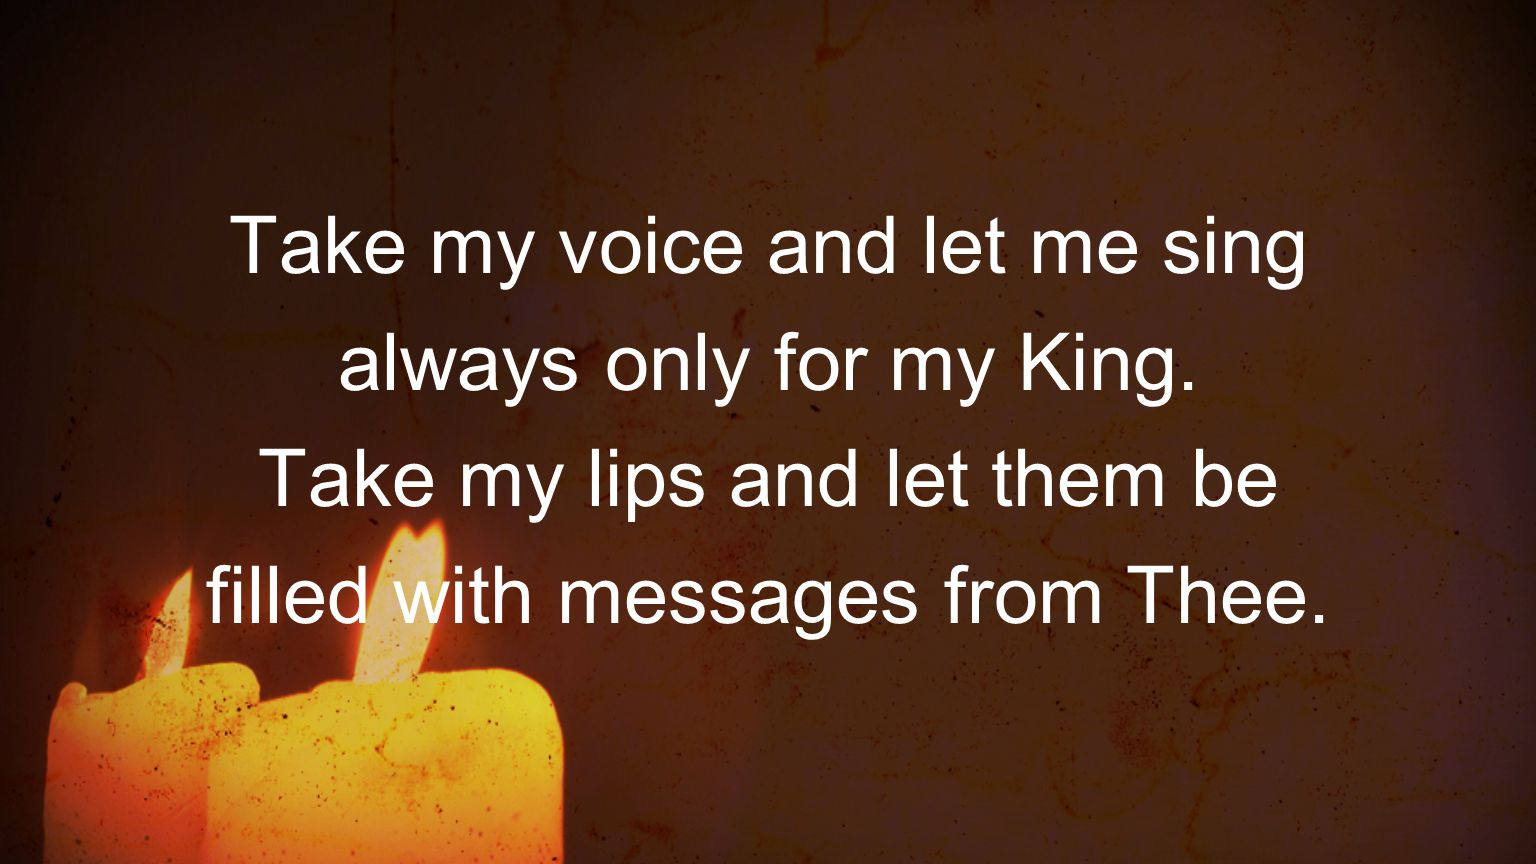 Take my voice and let me sing always only for my King.